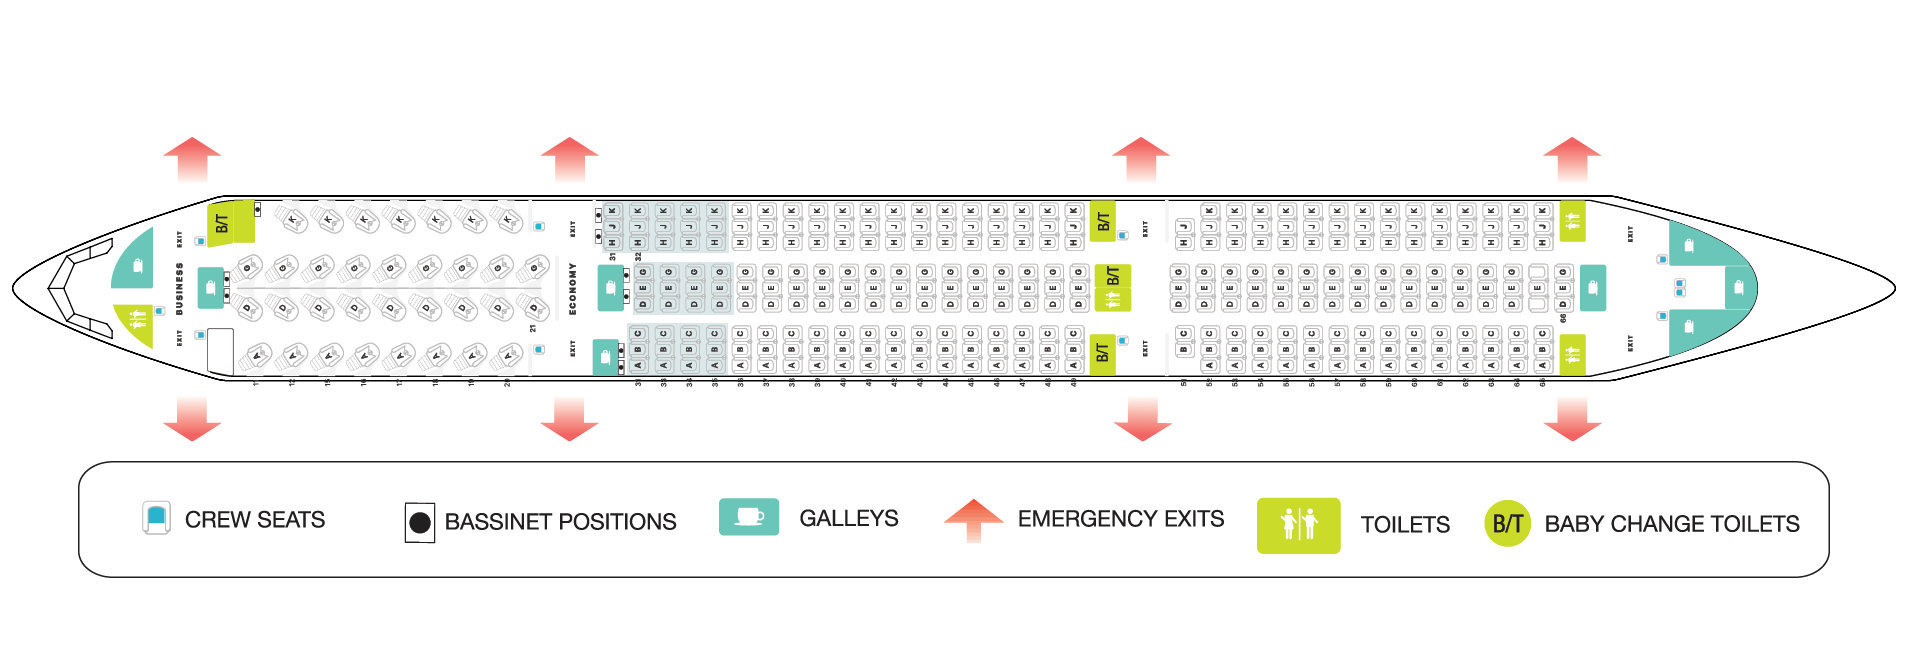 A350 Seating Plan